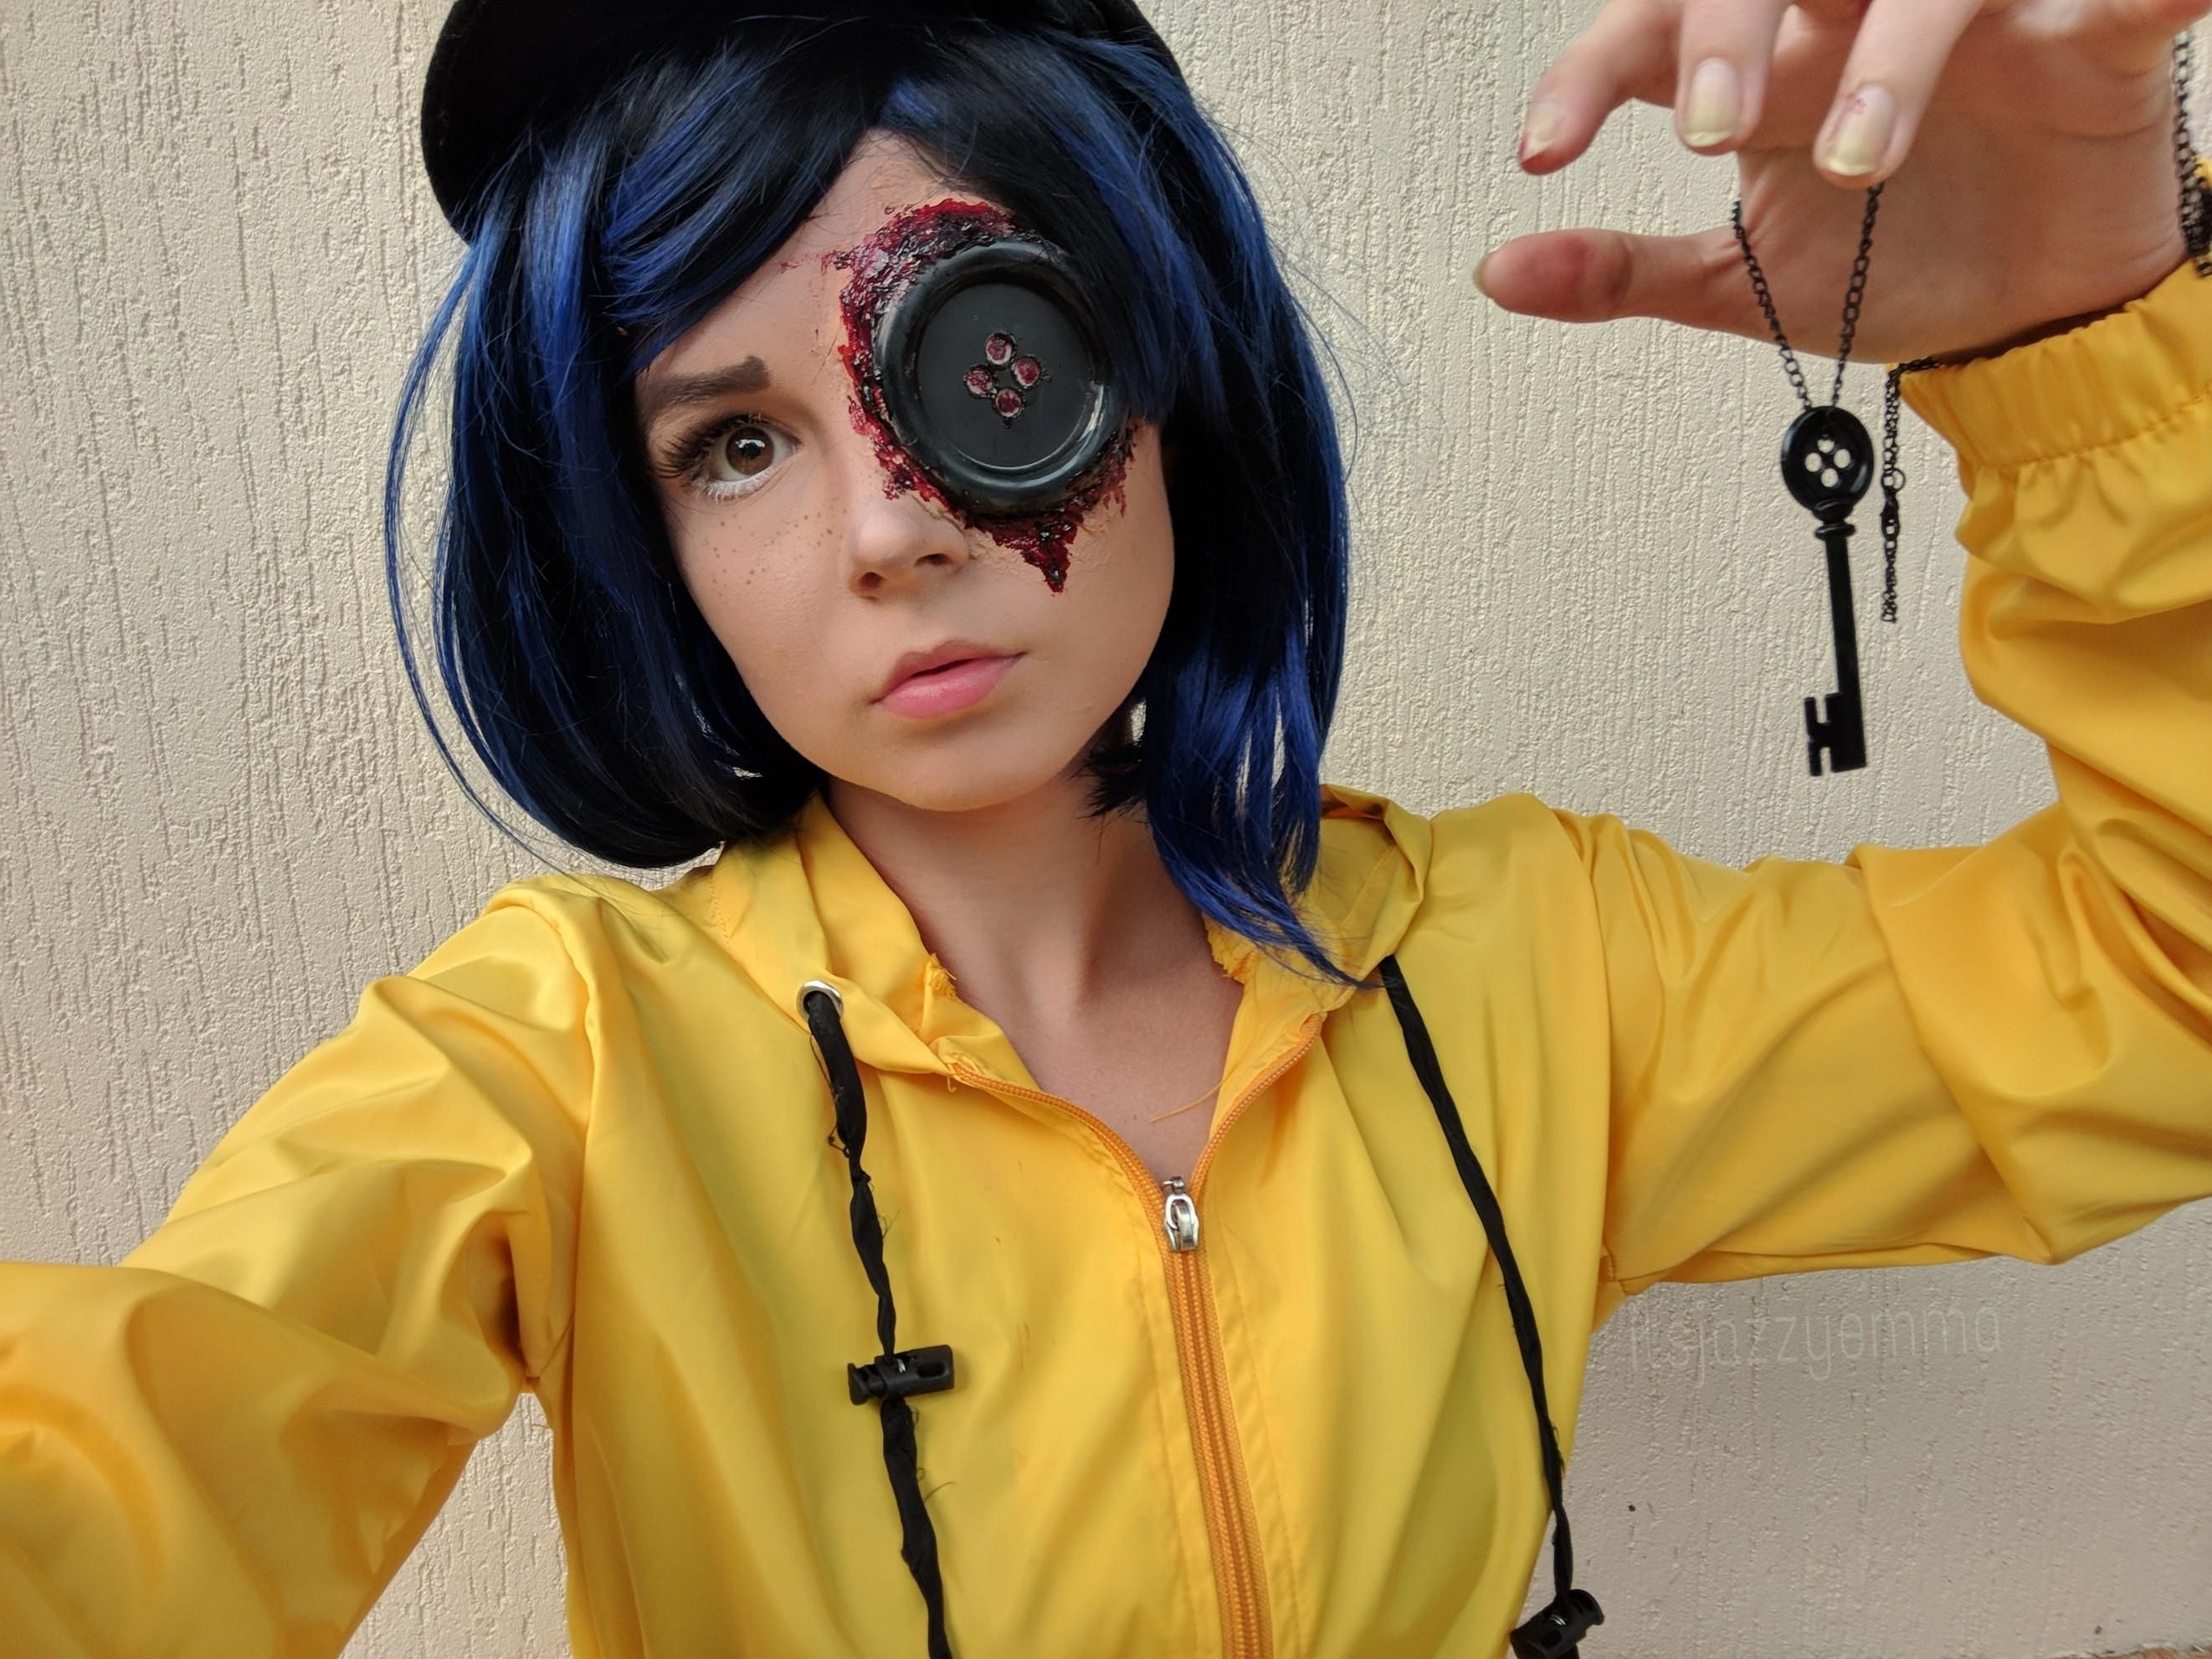 Self Oh My Twitchy Witchy Girl My Coraline Cosplay All Self Done Sfx And Makeup Coraline Halloween Costume Scary Halloween Costumes Coraline Costume